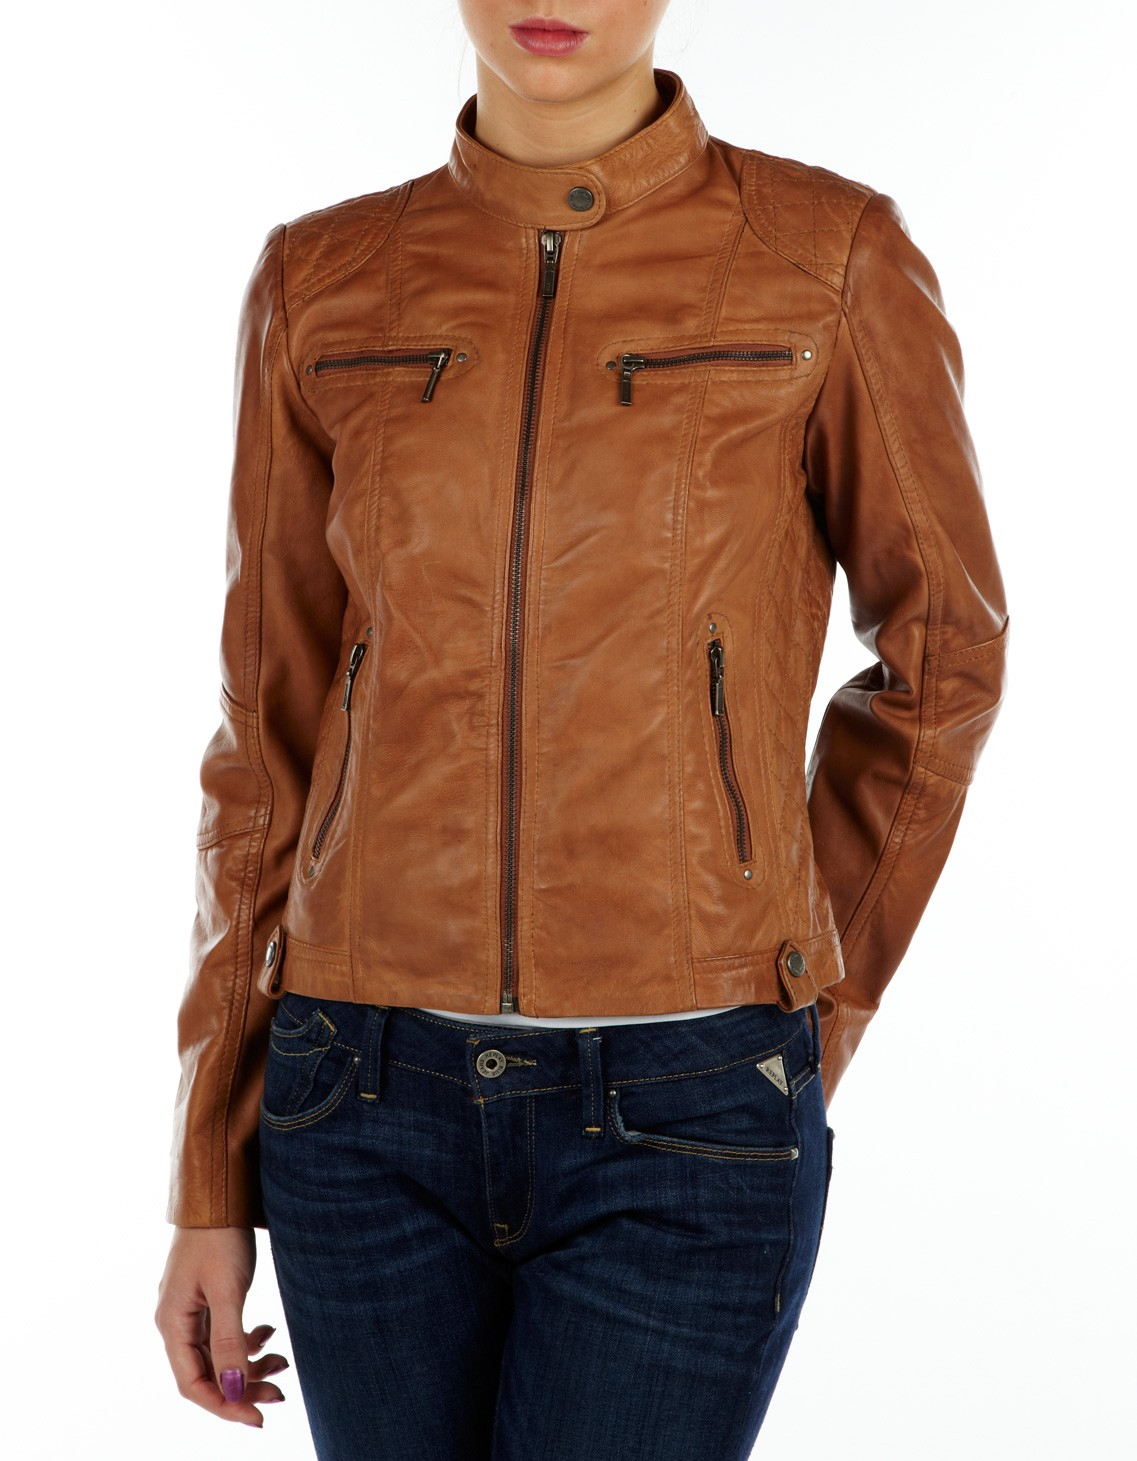 Leather Brown Jackets For Women Photo Album - Reikian